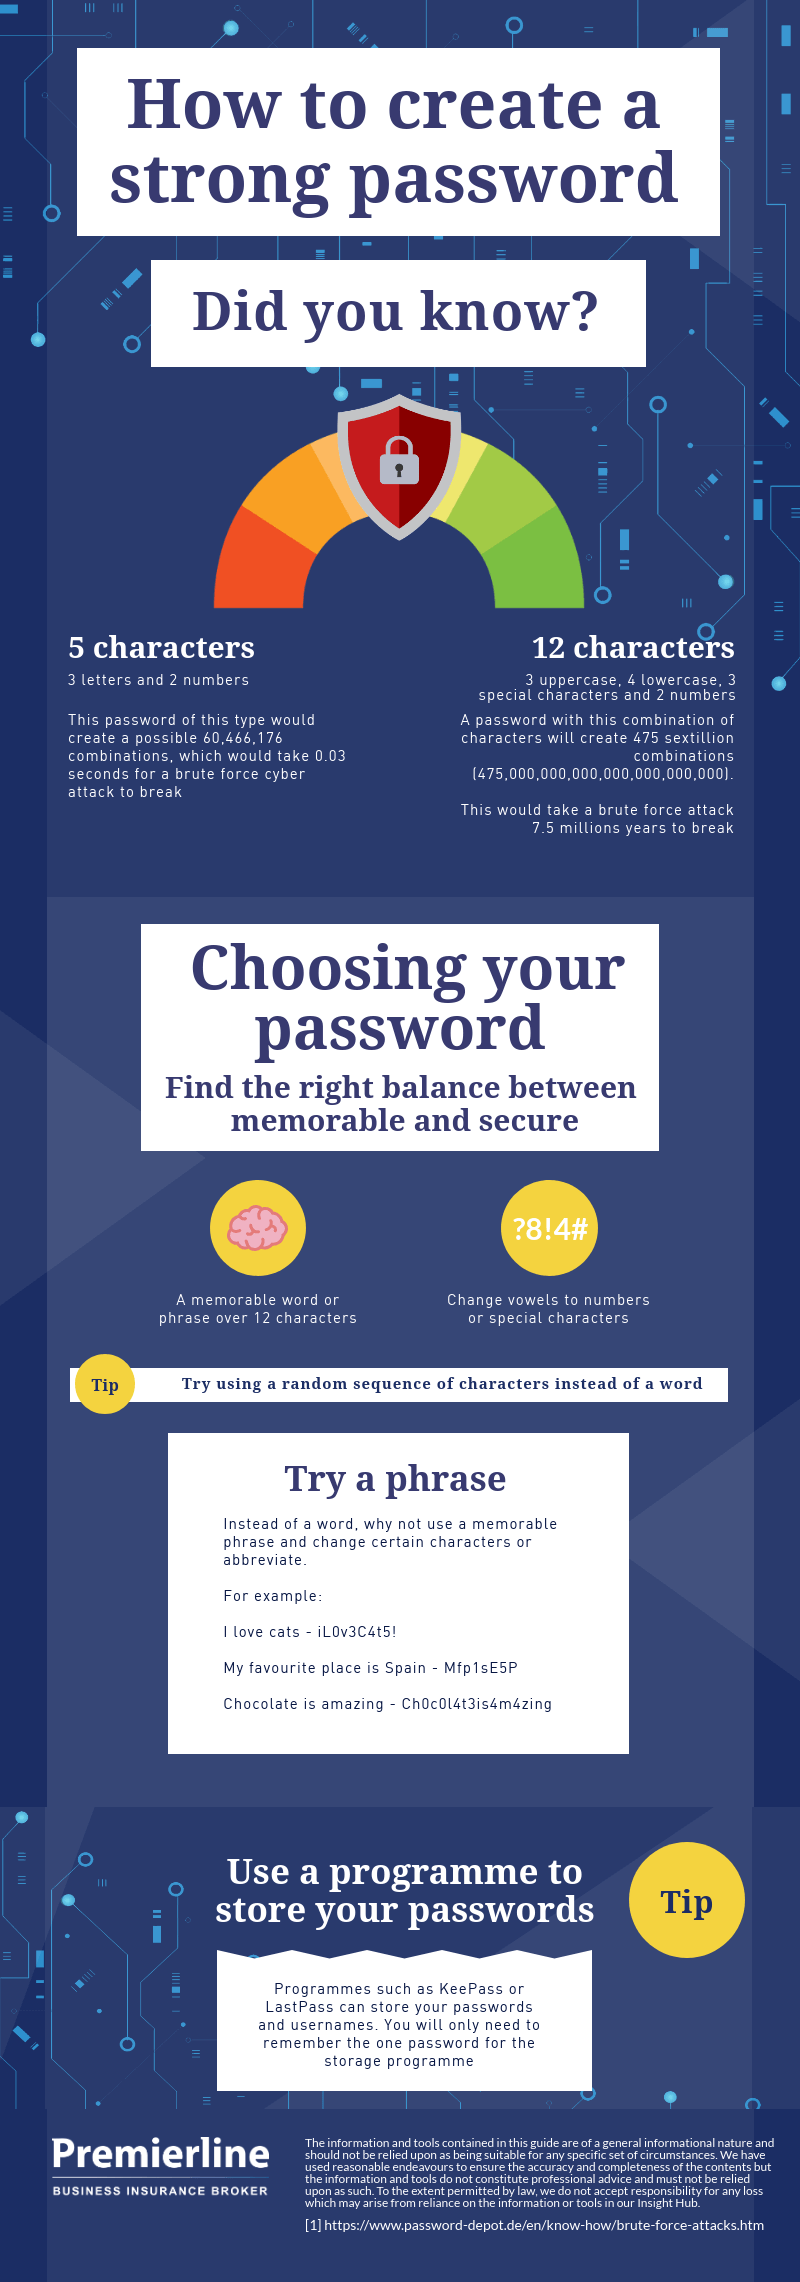 How to choose the safest password